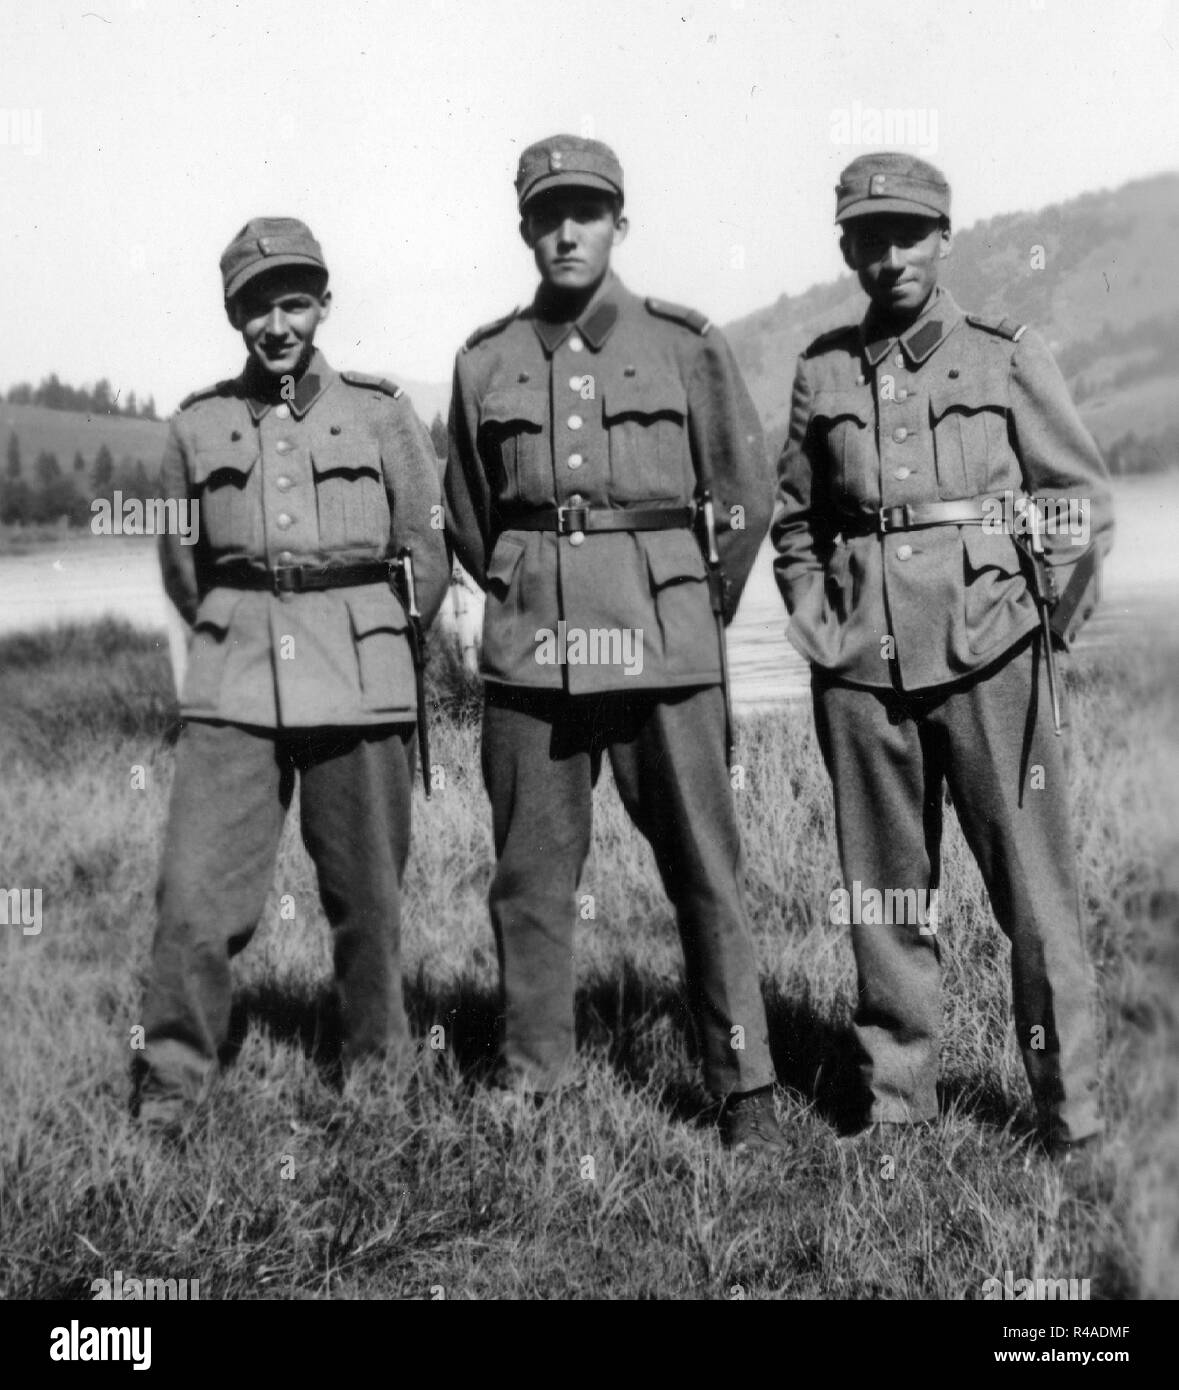 Swiss Soldiers Ww2 Stock Photo: 226423695